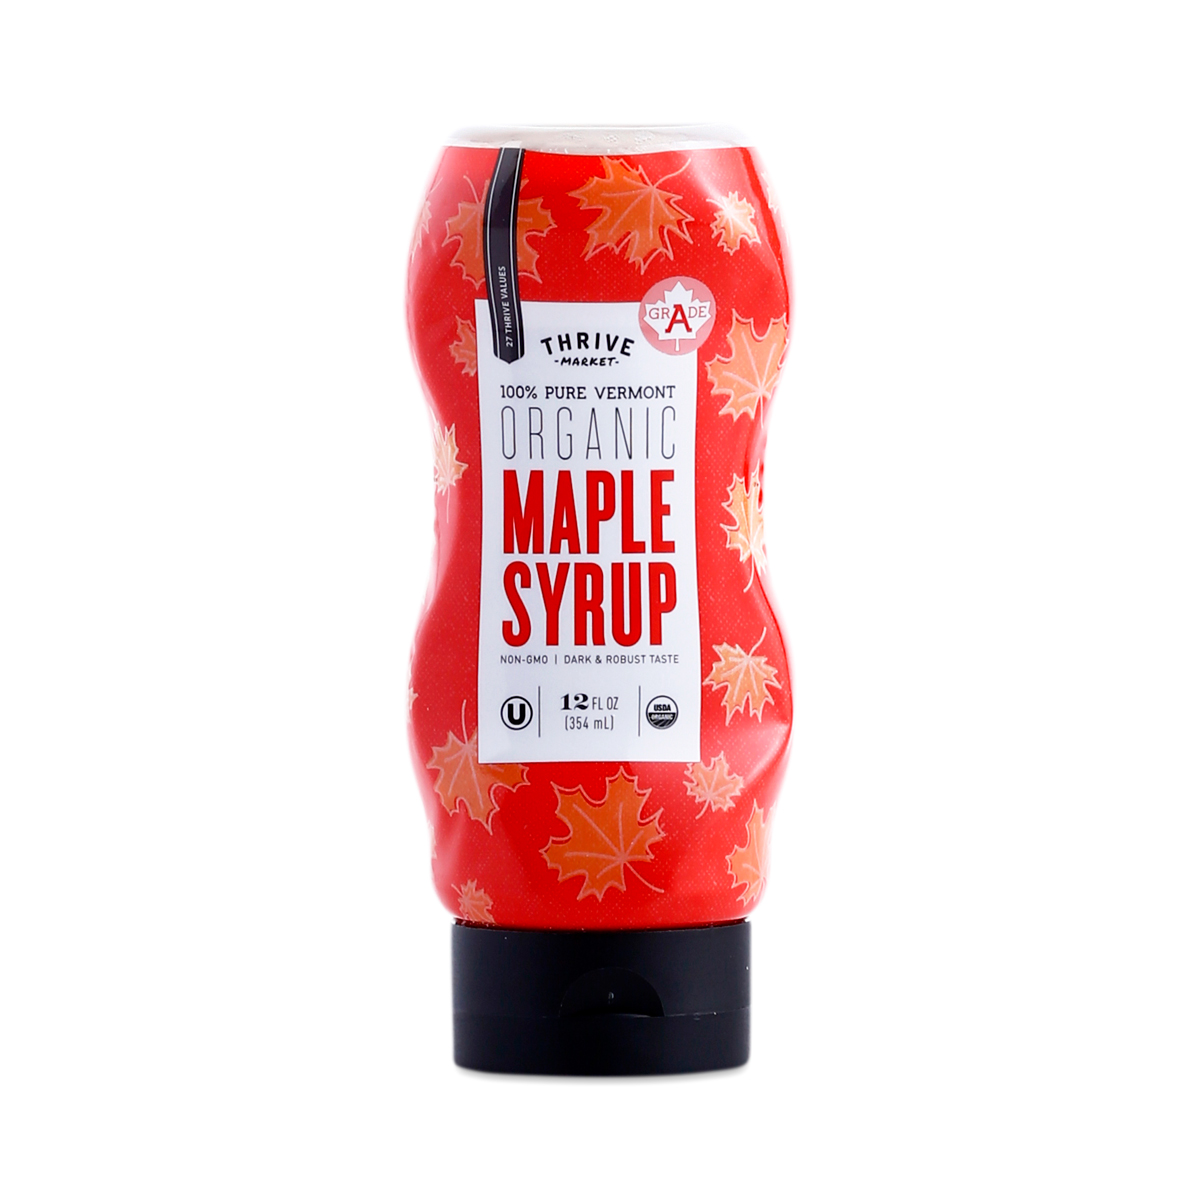 Thrive Market Organic Maple Syrup, Grade A 12 oz squeeze bottle